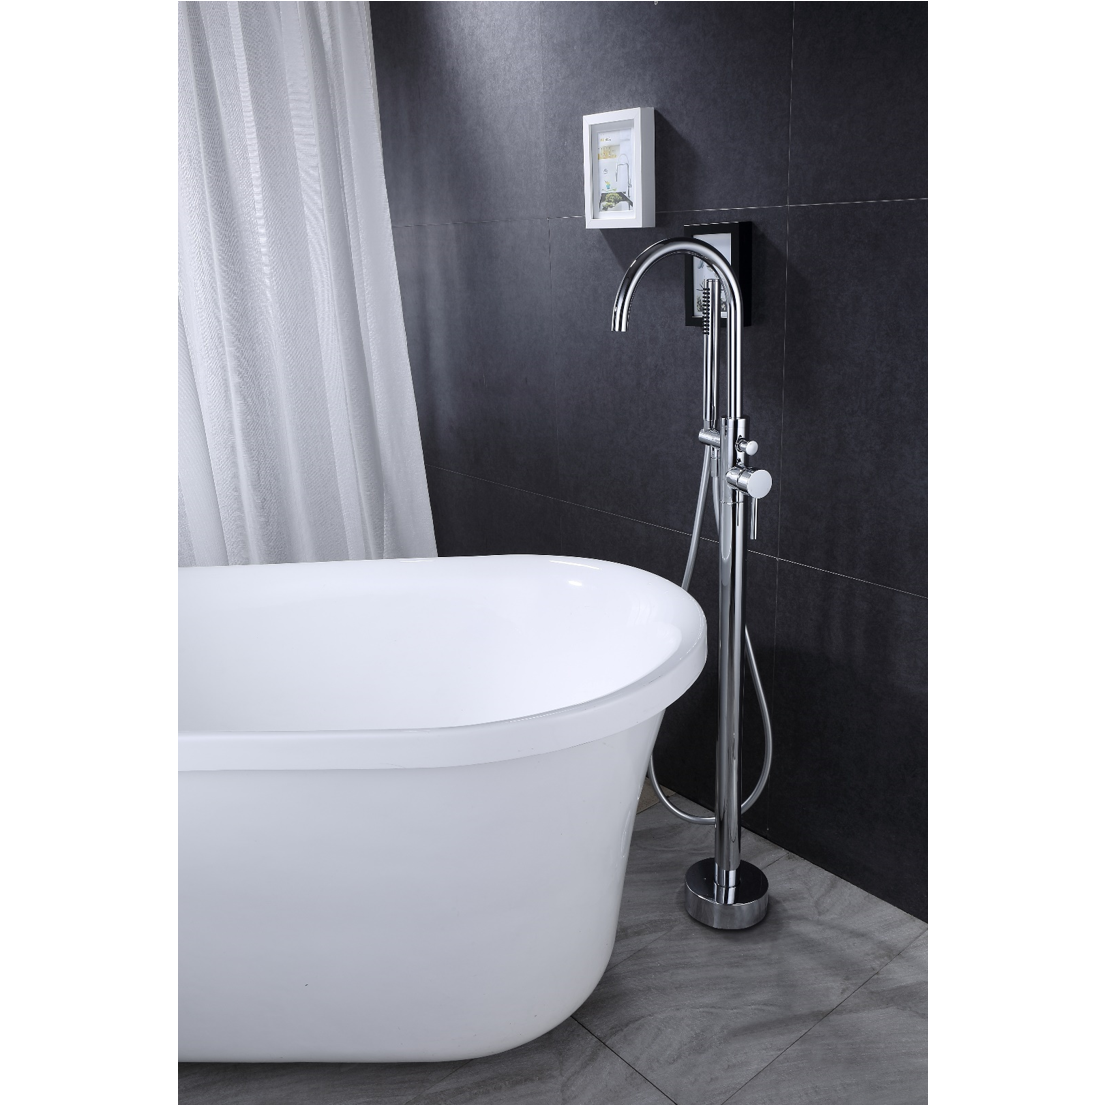 robinet mitigeur bain douche sur pied debrio pour. Black Bedroom Furniture Sets. Home Design Ideas